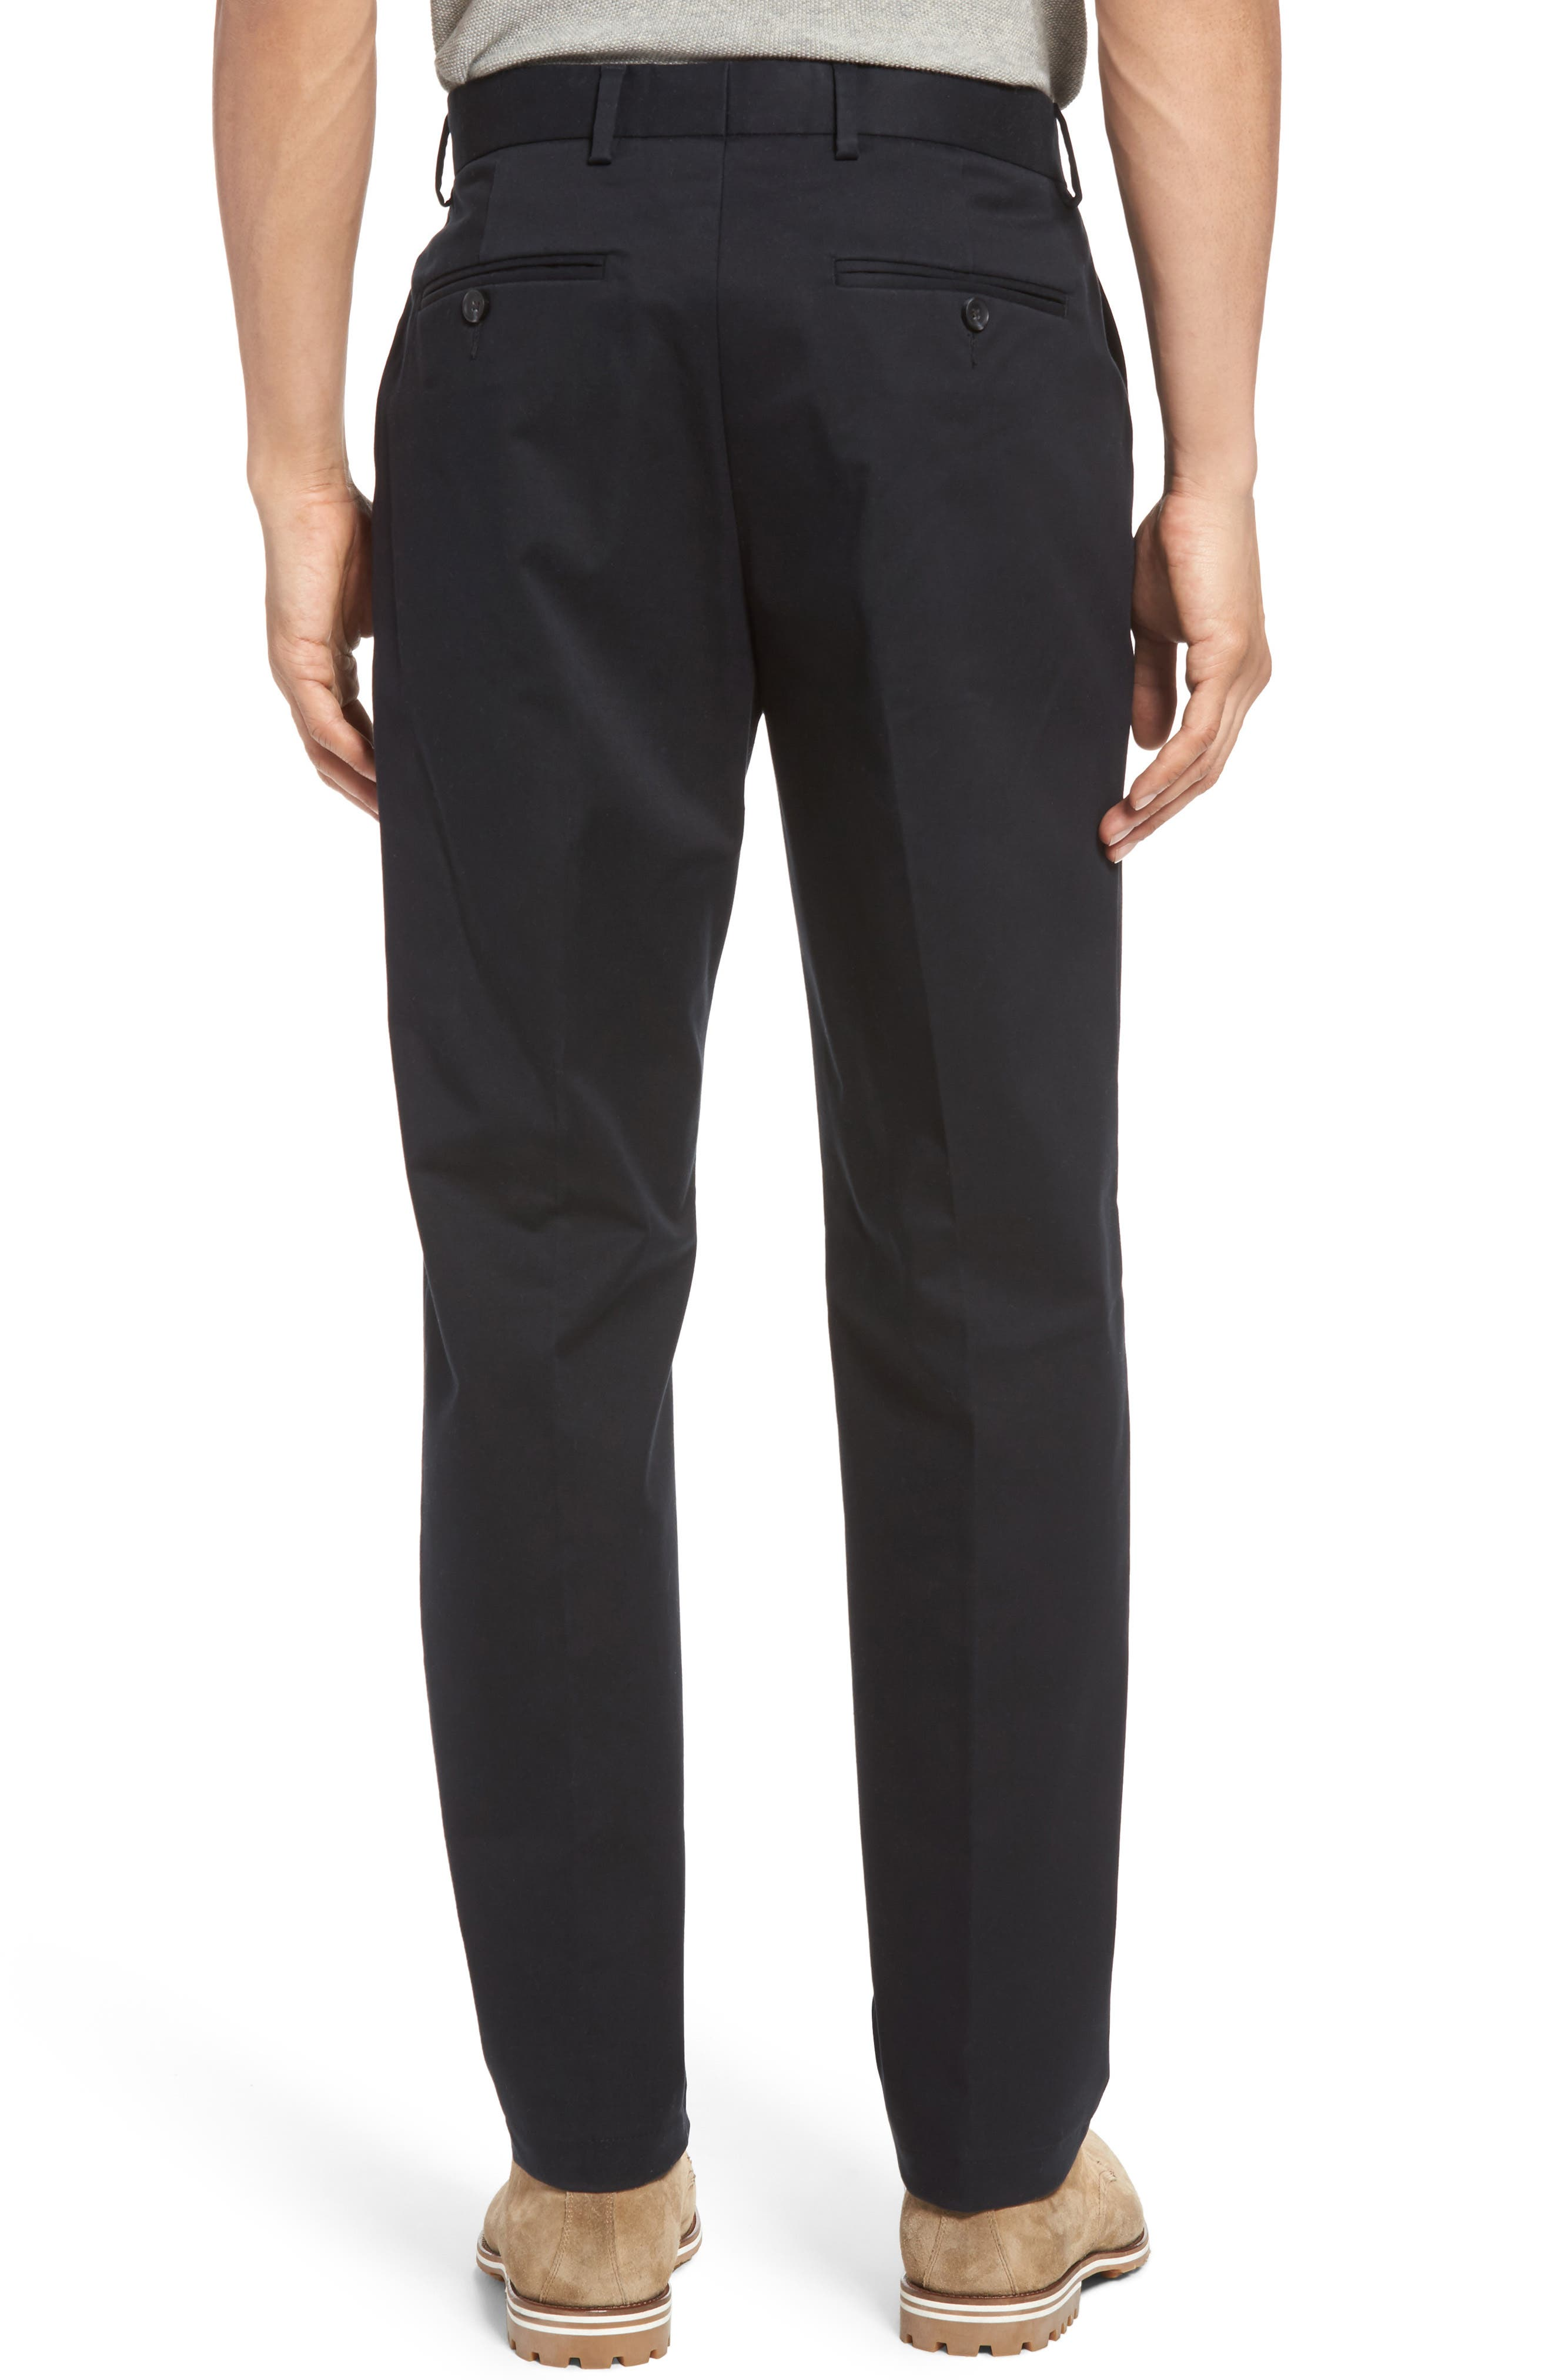 Nordstrom Men's Shop Georgetown Chinos,                             Alternate thumbnail 2, color,                             001